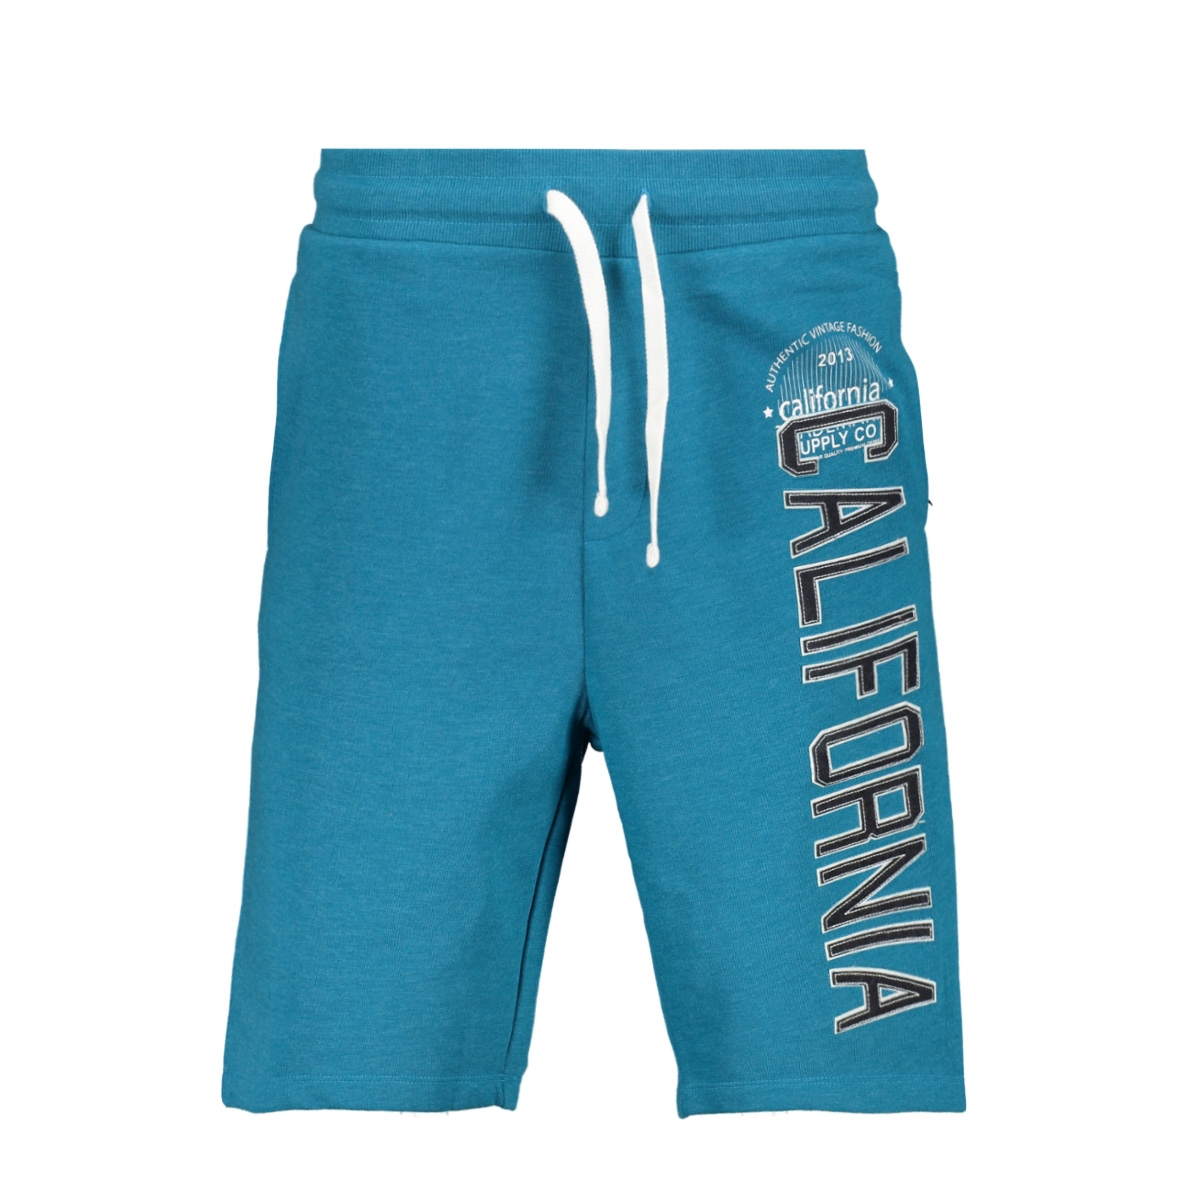 pktviy superior sweat shorts 12154039 produkt korte broek crystal teal/melange